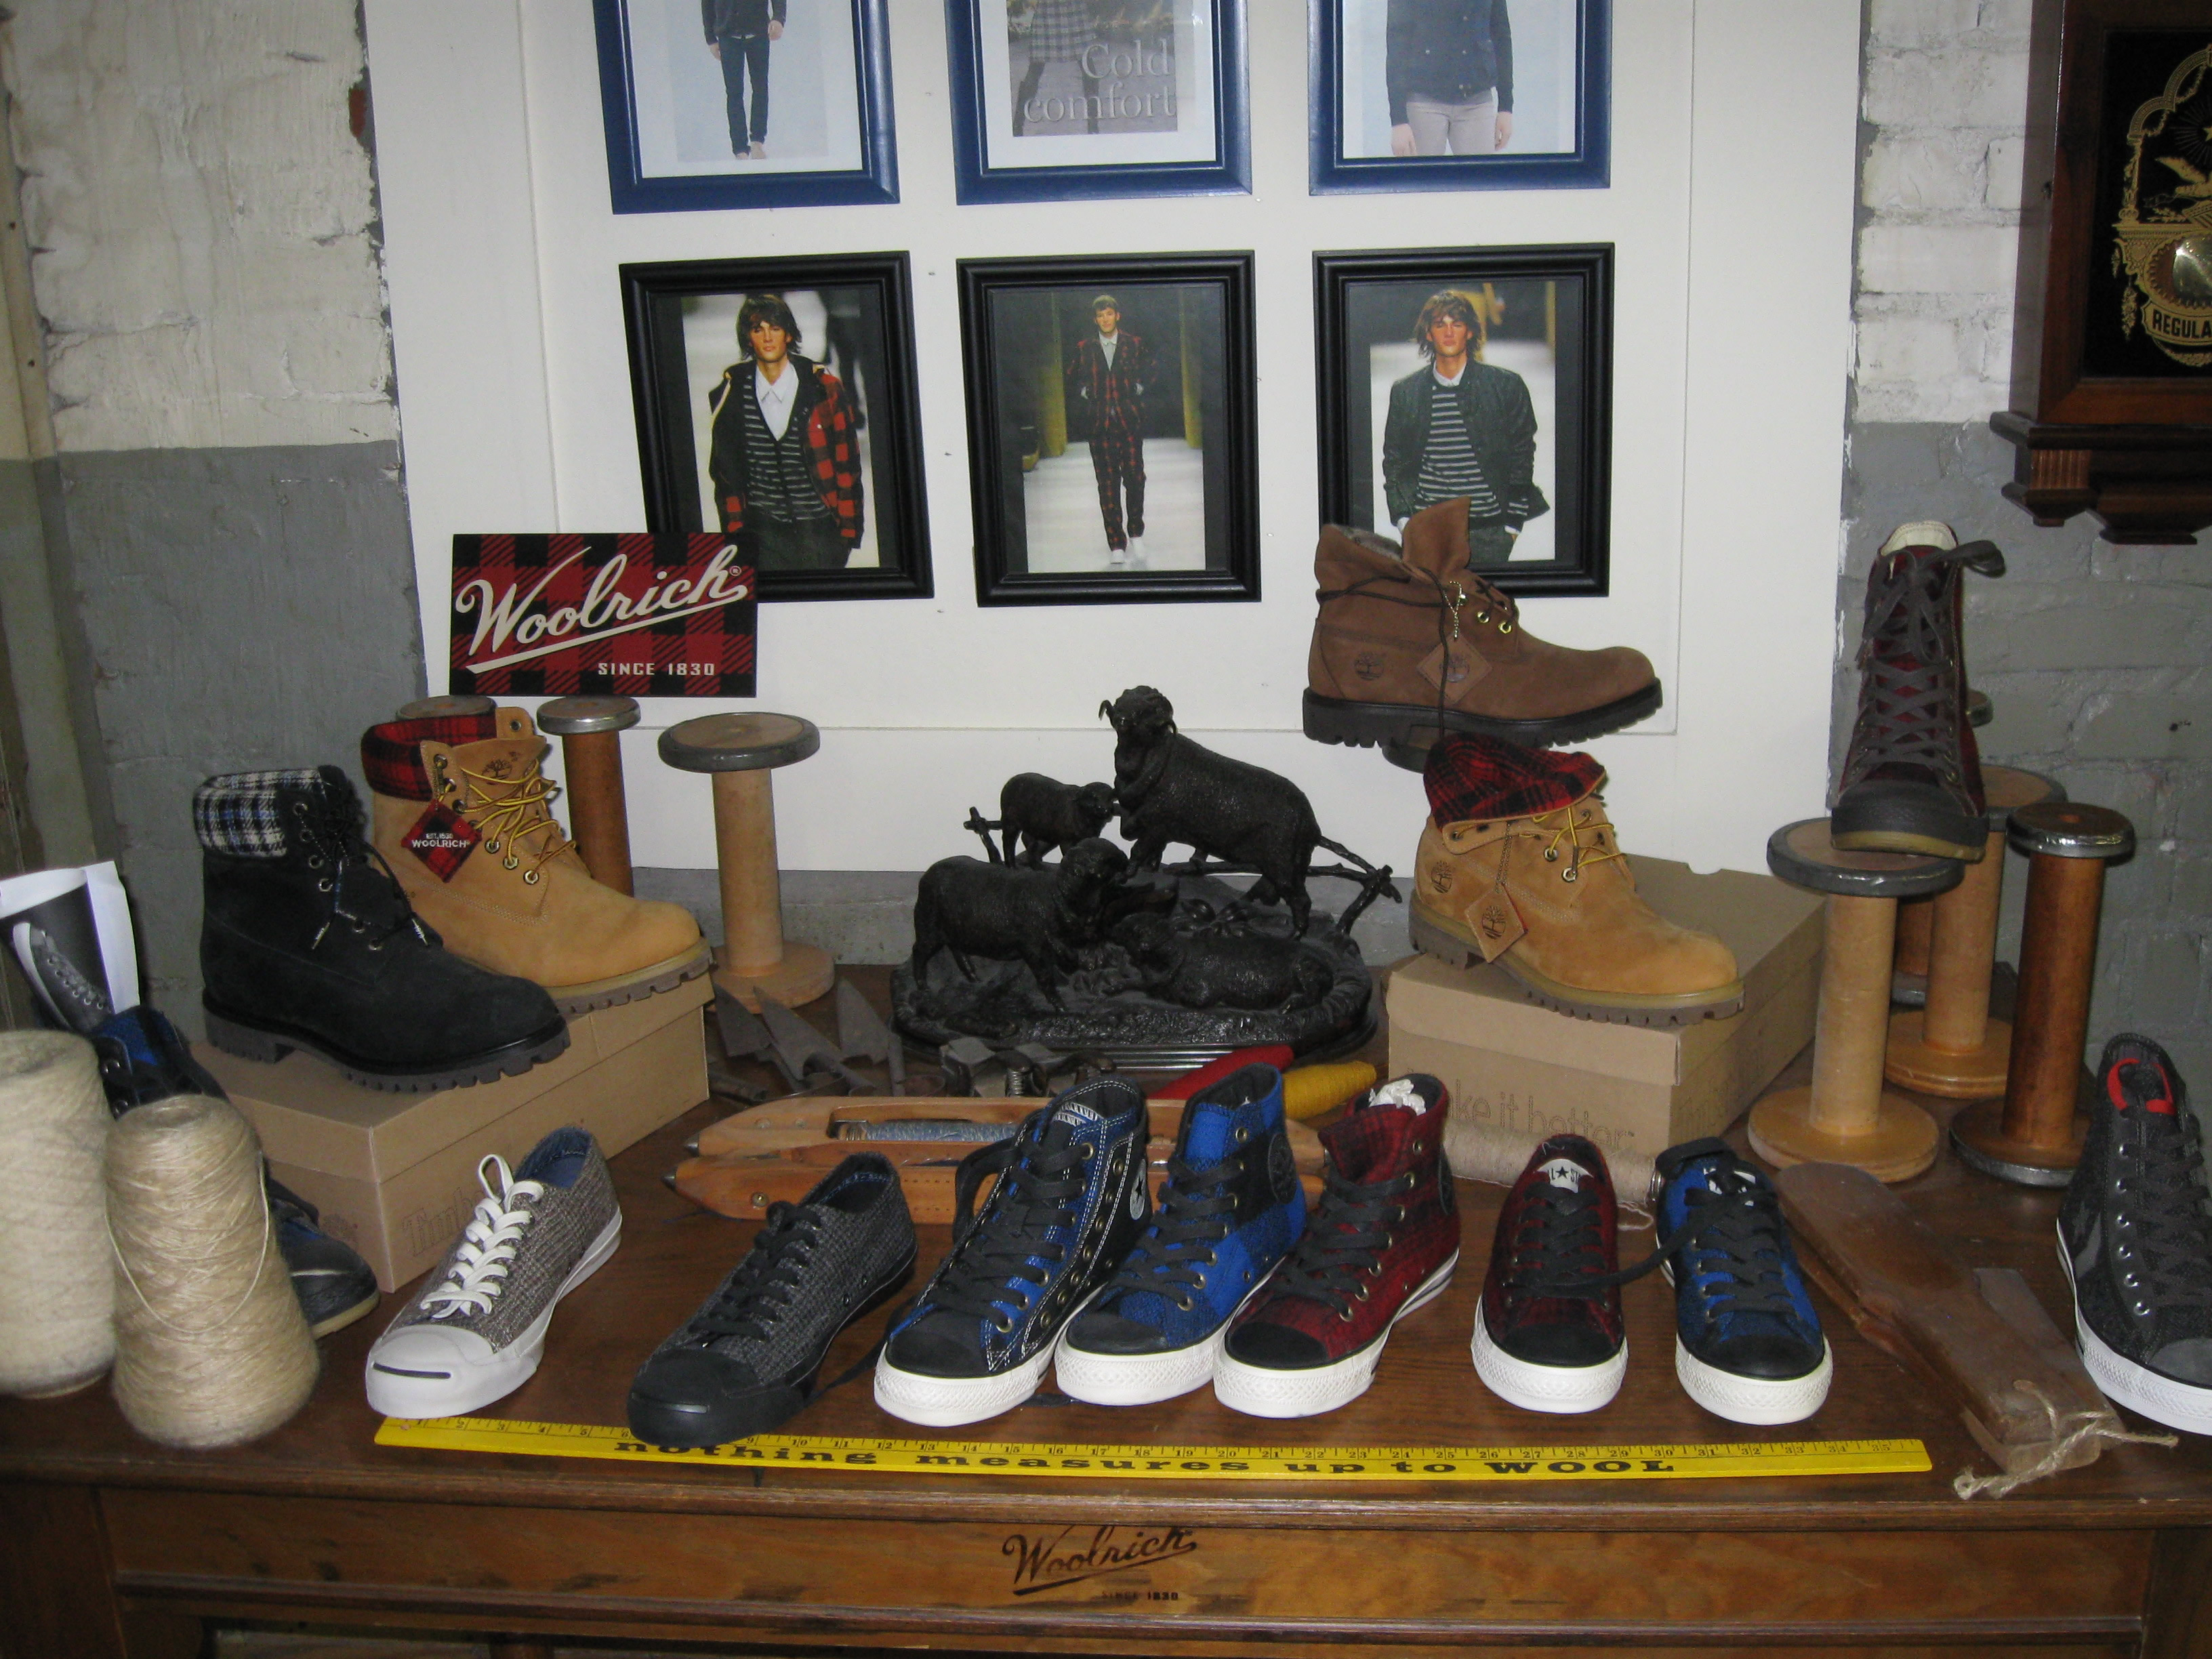 Woolrich Shoe display